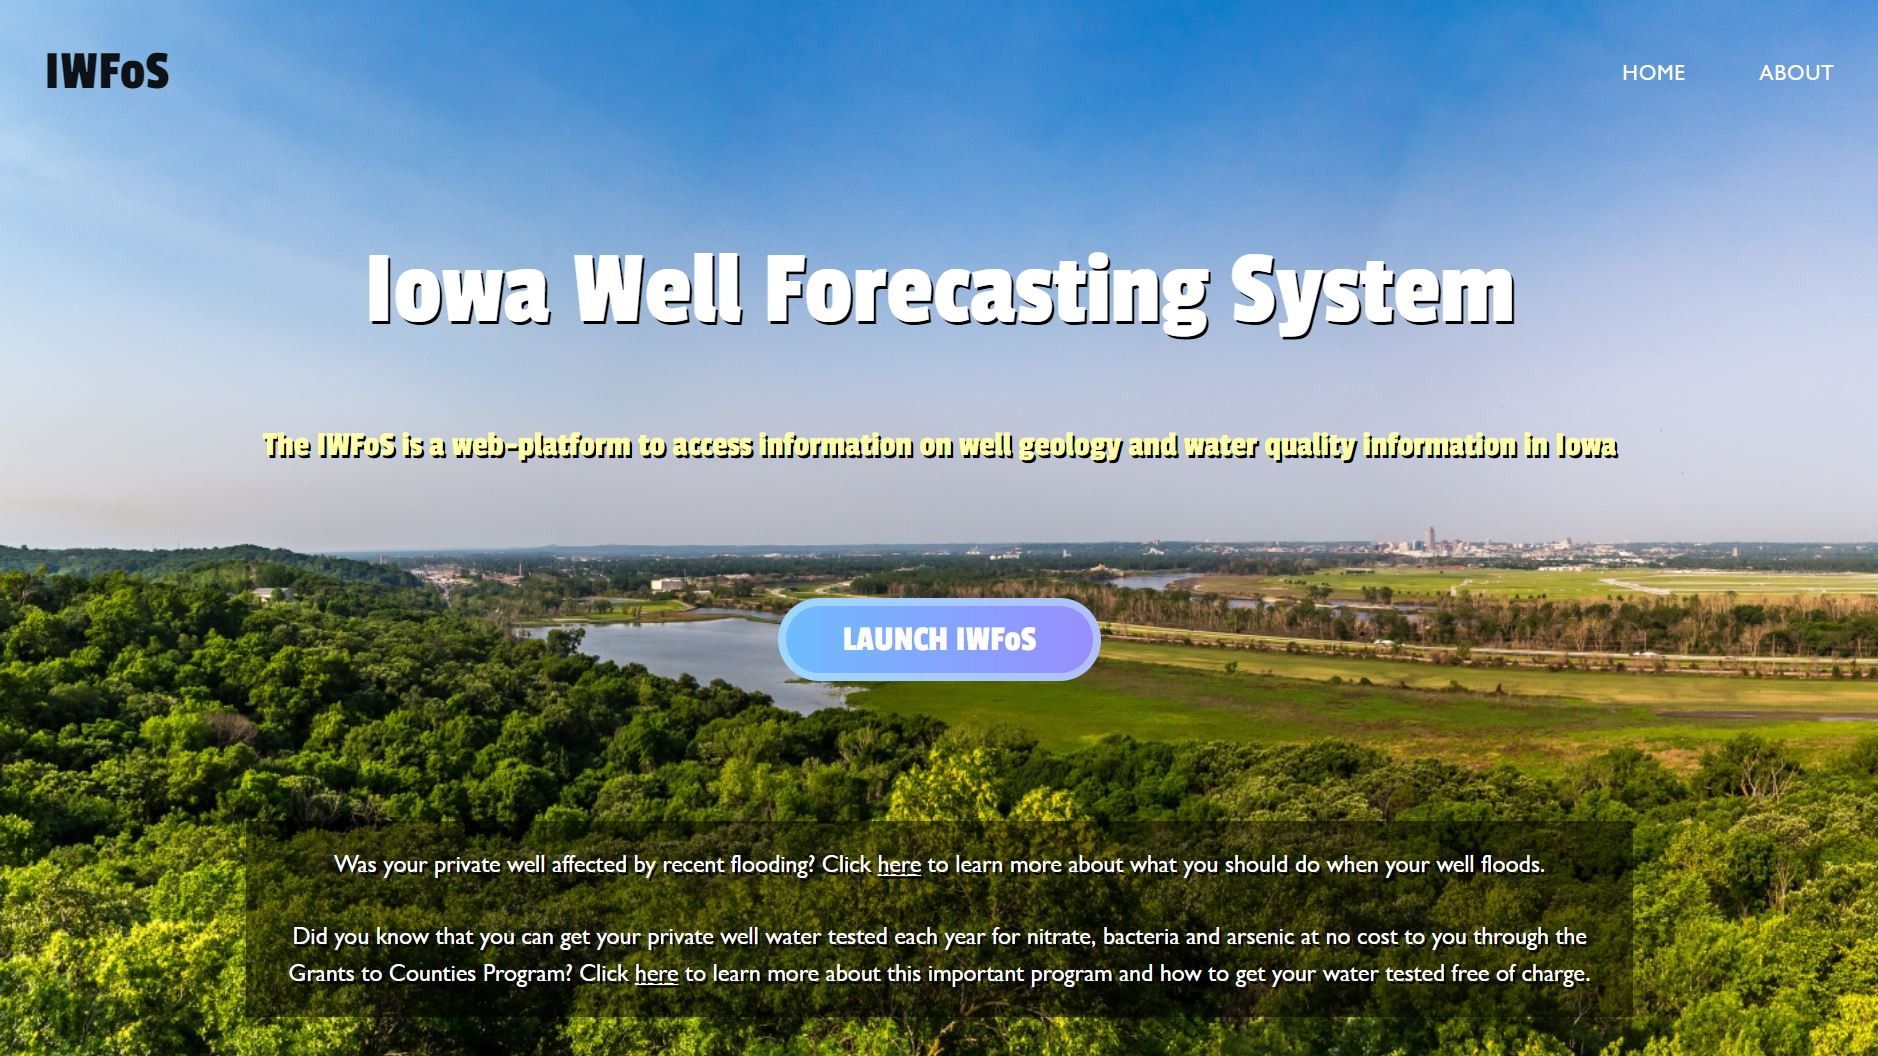 Iowa Well Forecasting System website image.